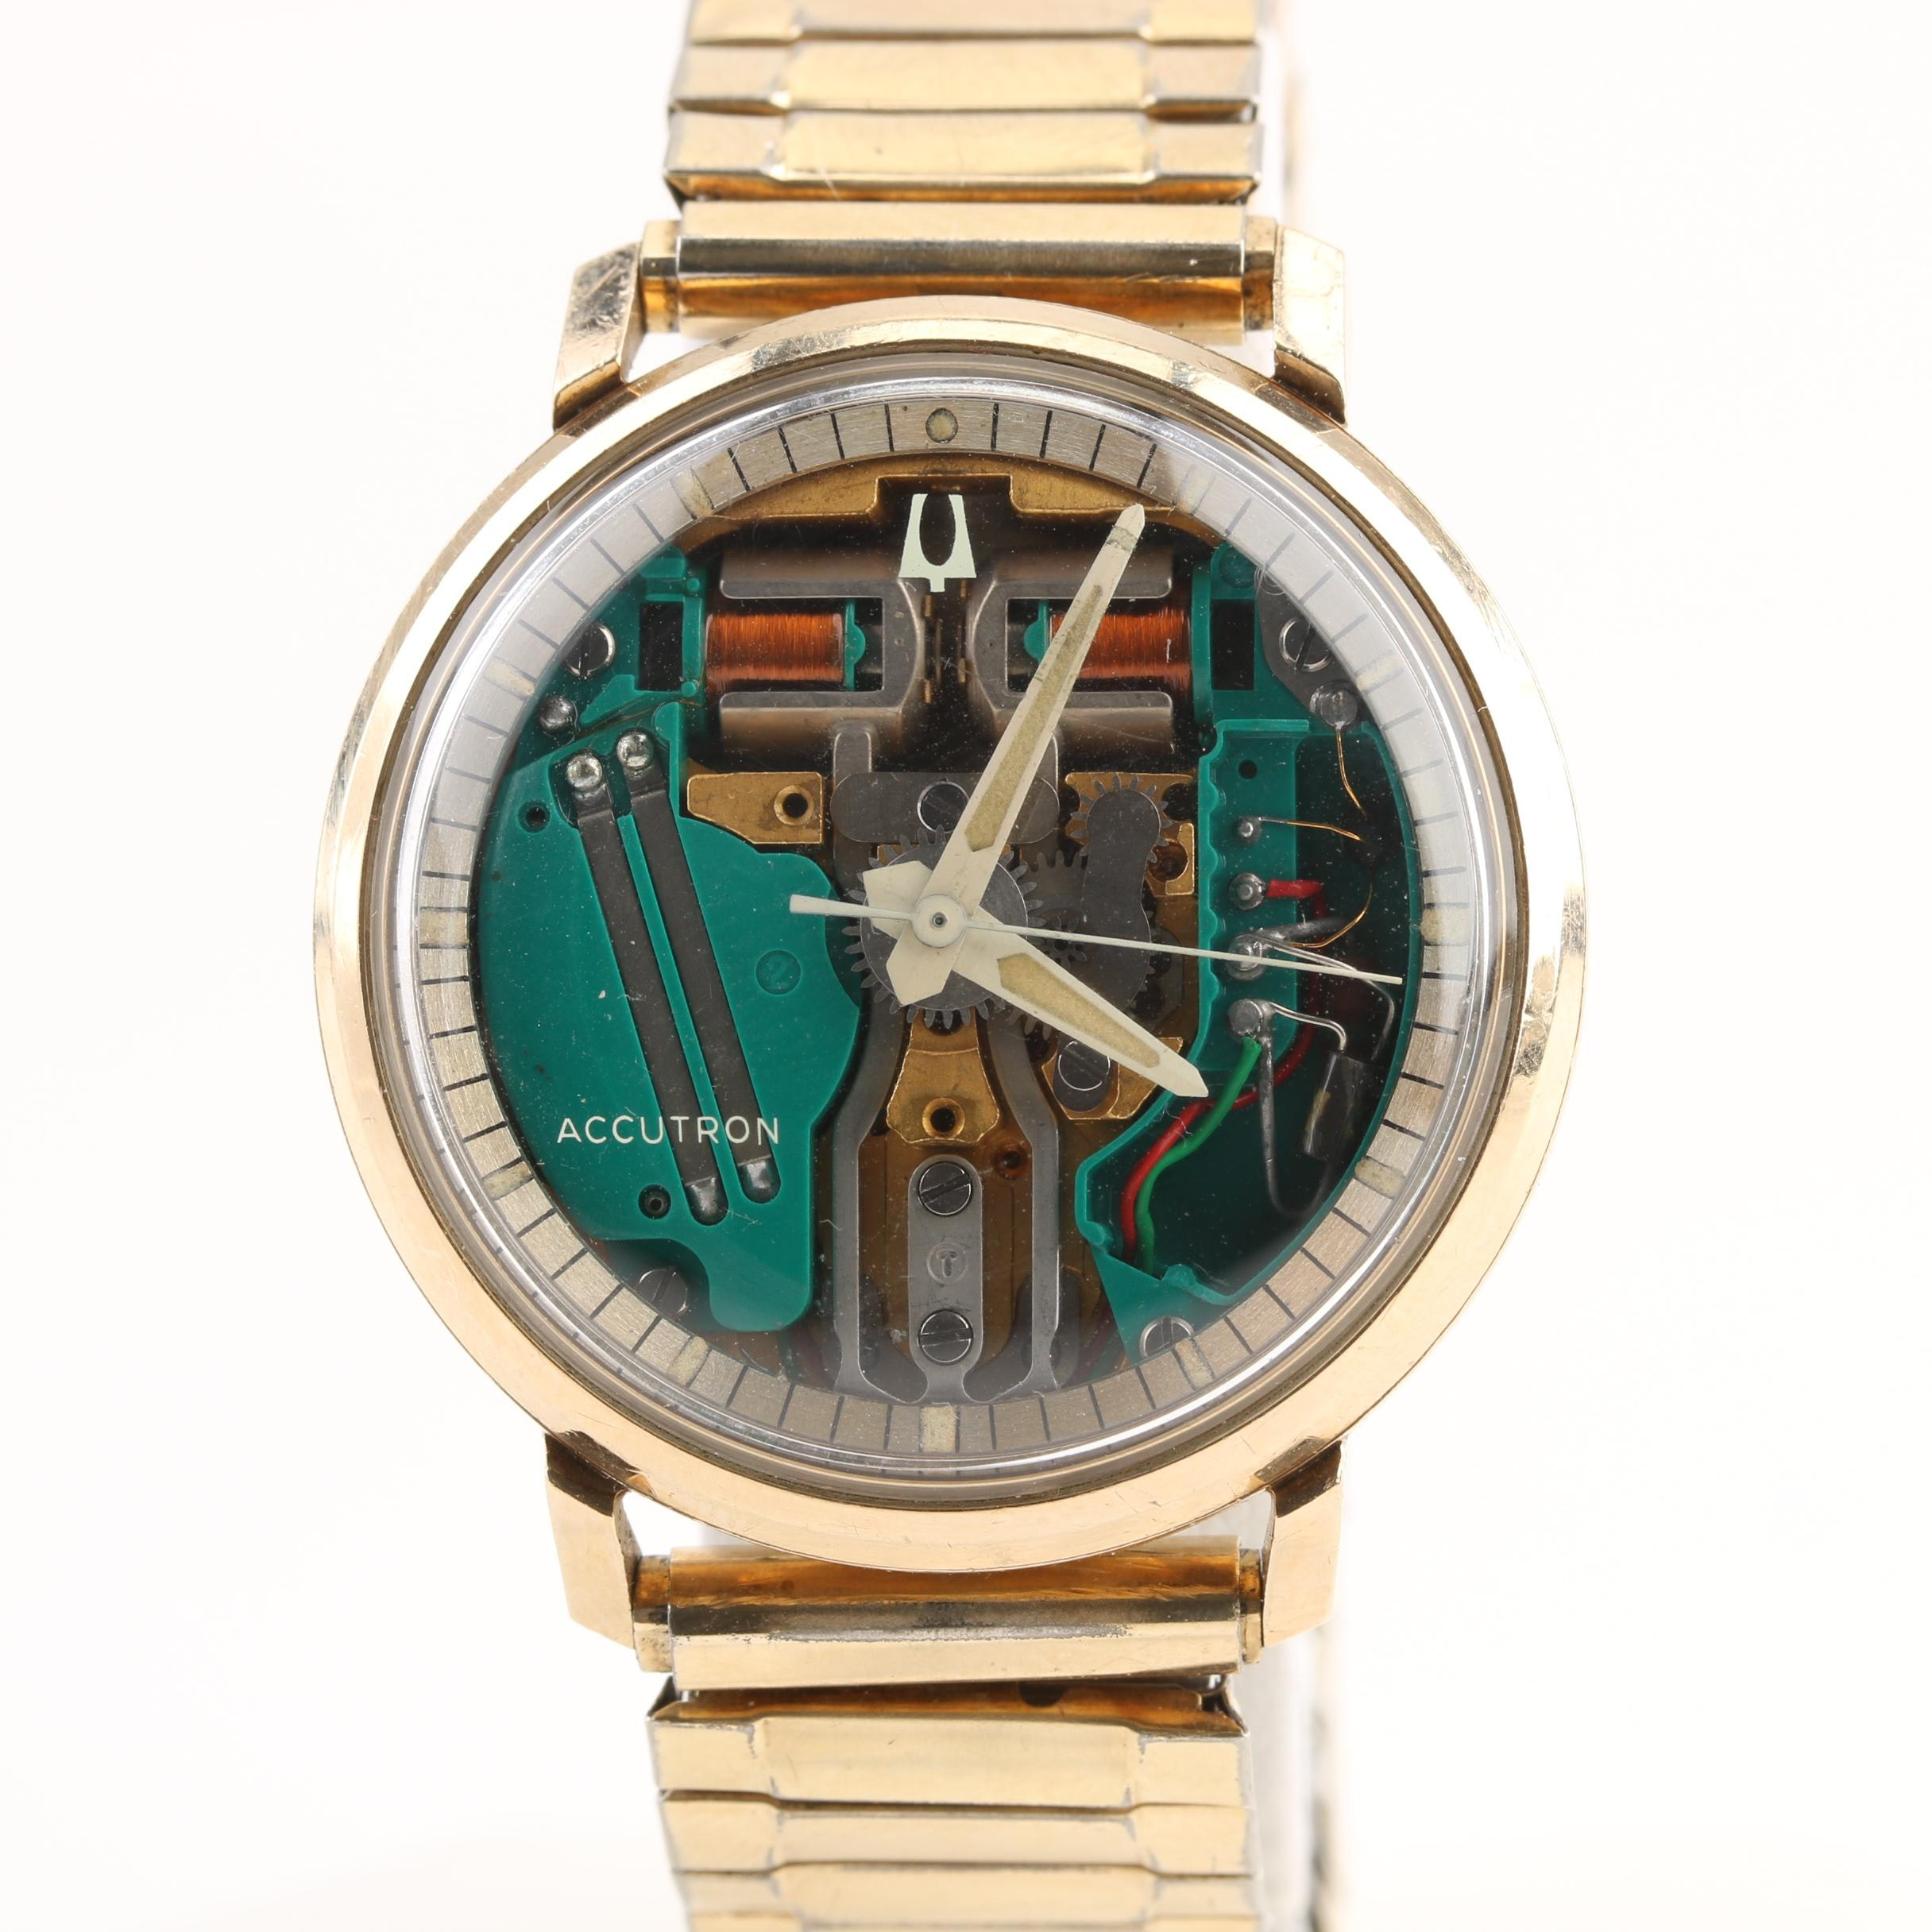 Accutron Spaceview 10K Gold Filled and Stainless Steel Wristwatch